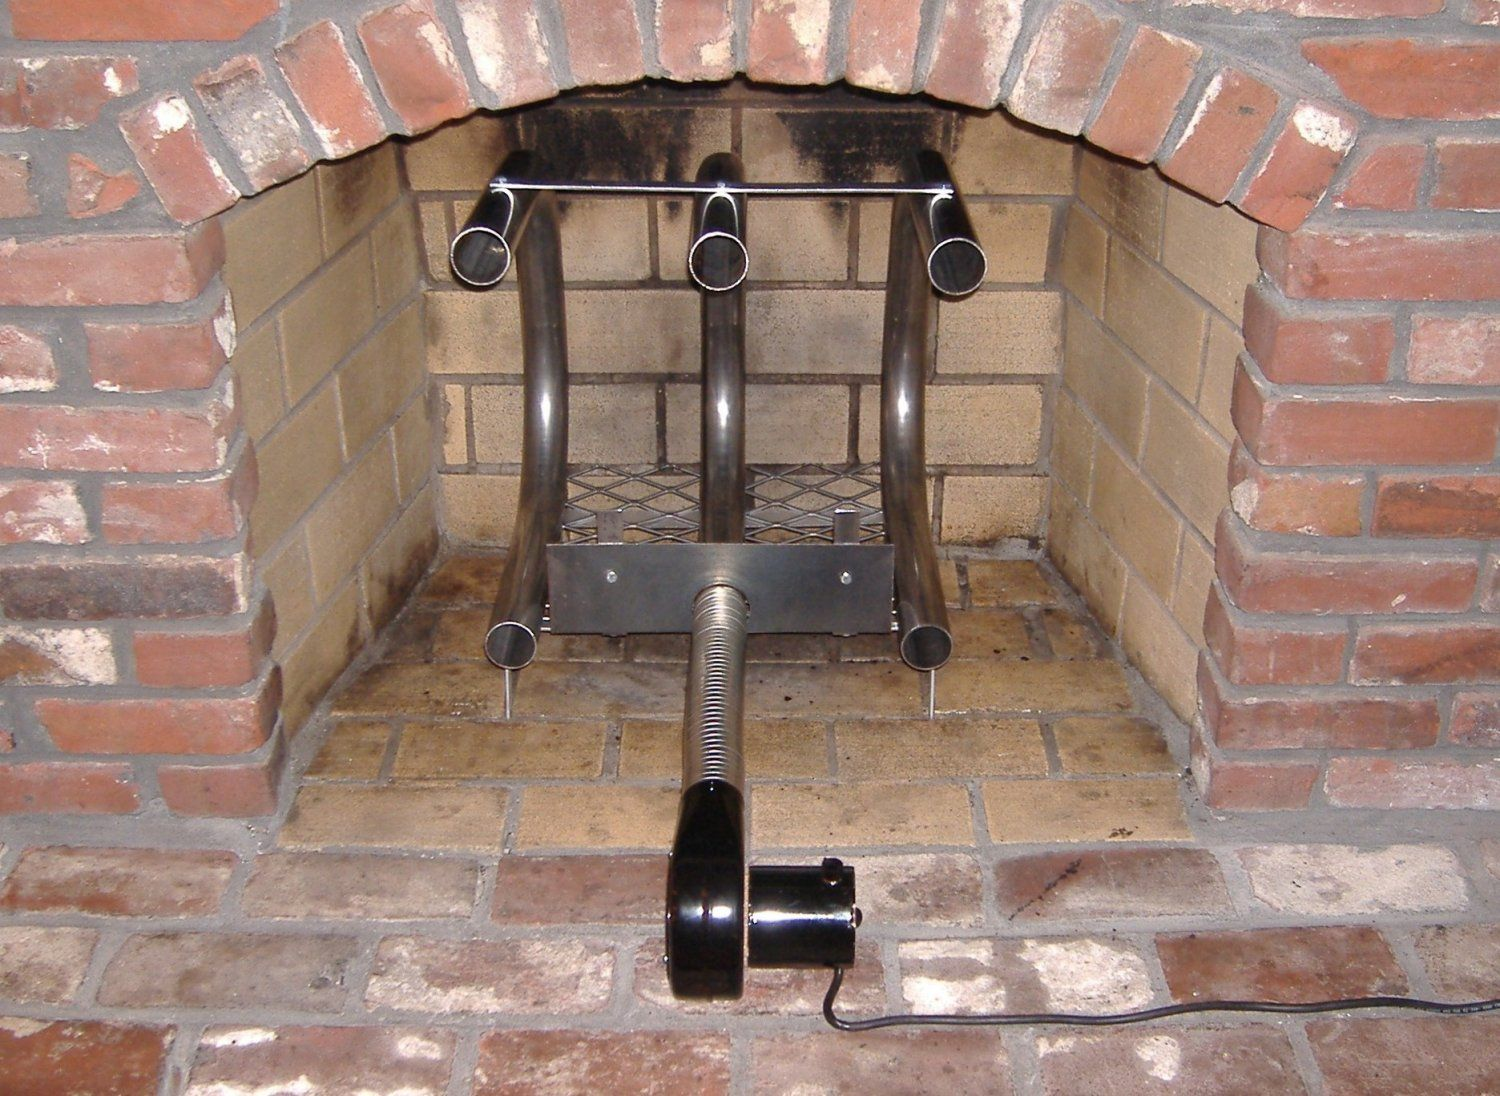 Wood Burning Fireplace Heater Blower More Heat From The Fireplace I Really Like This Idea Ideas For